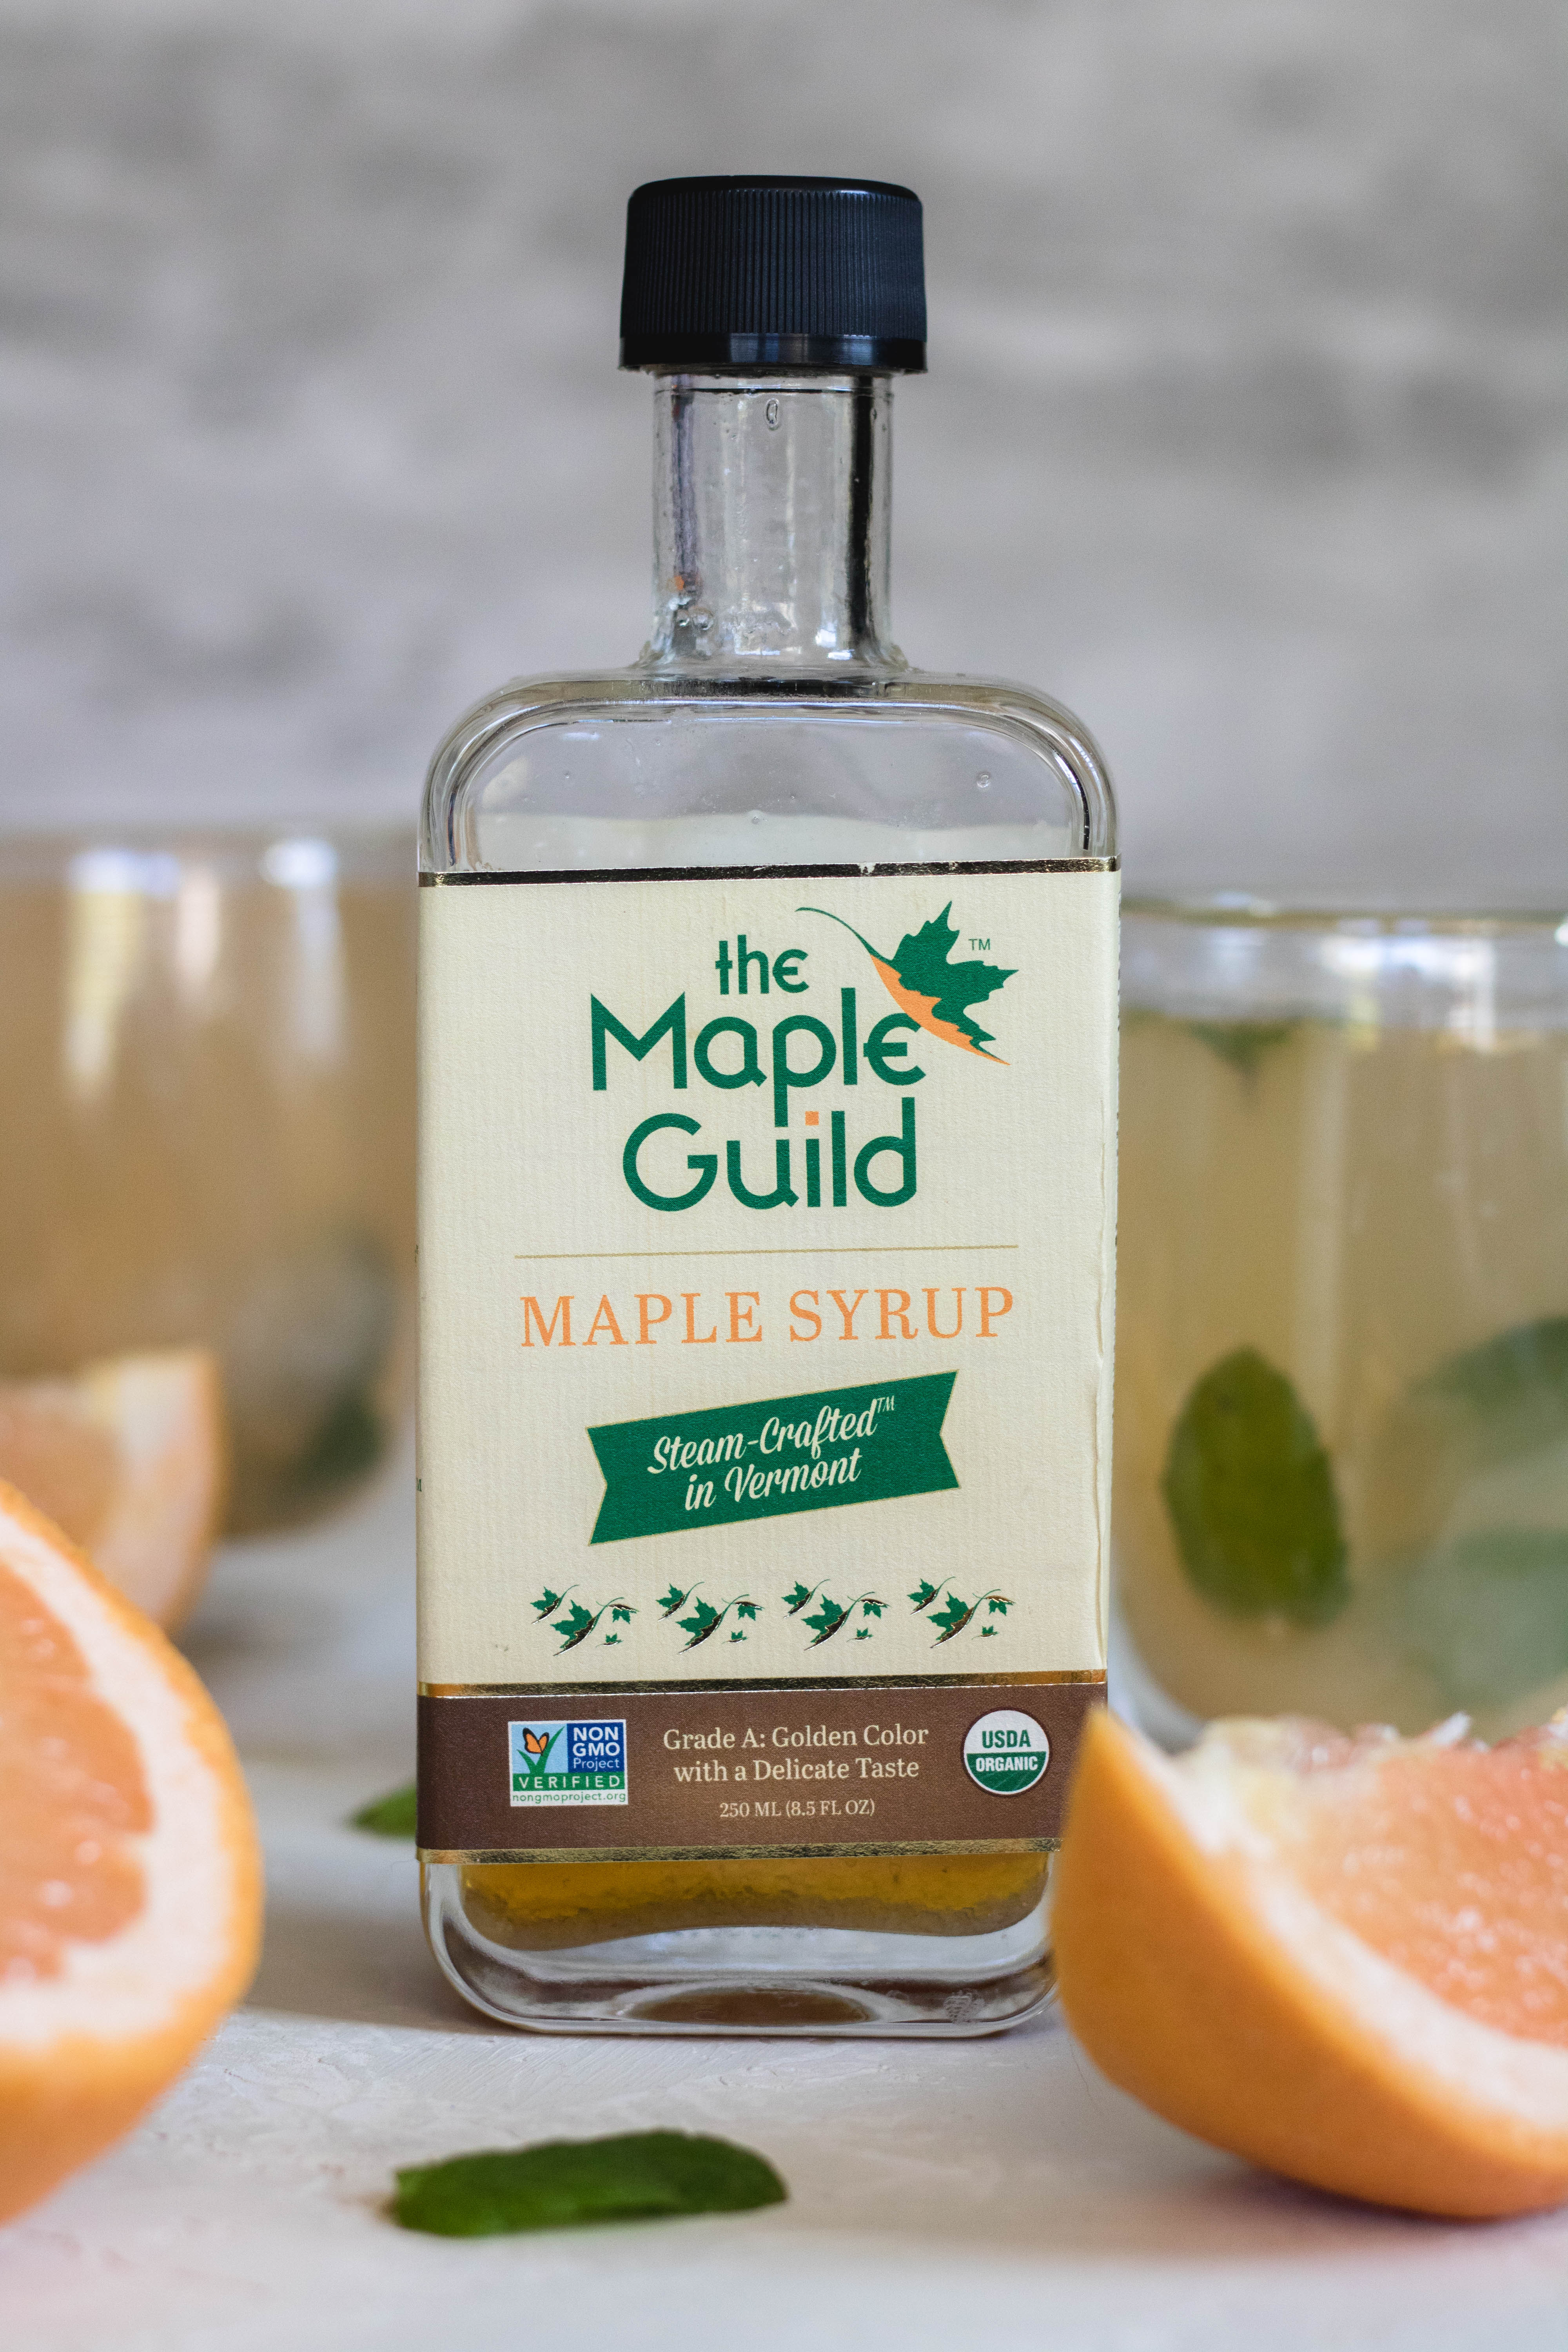 The maple guild maple syrup